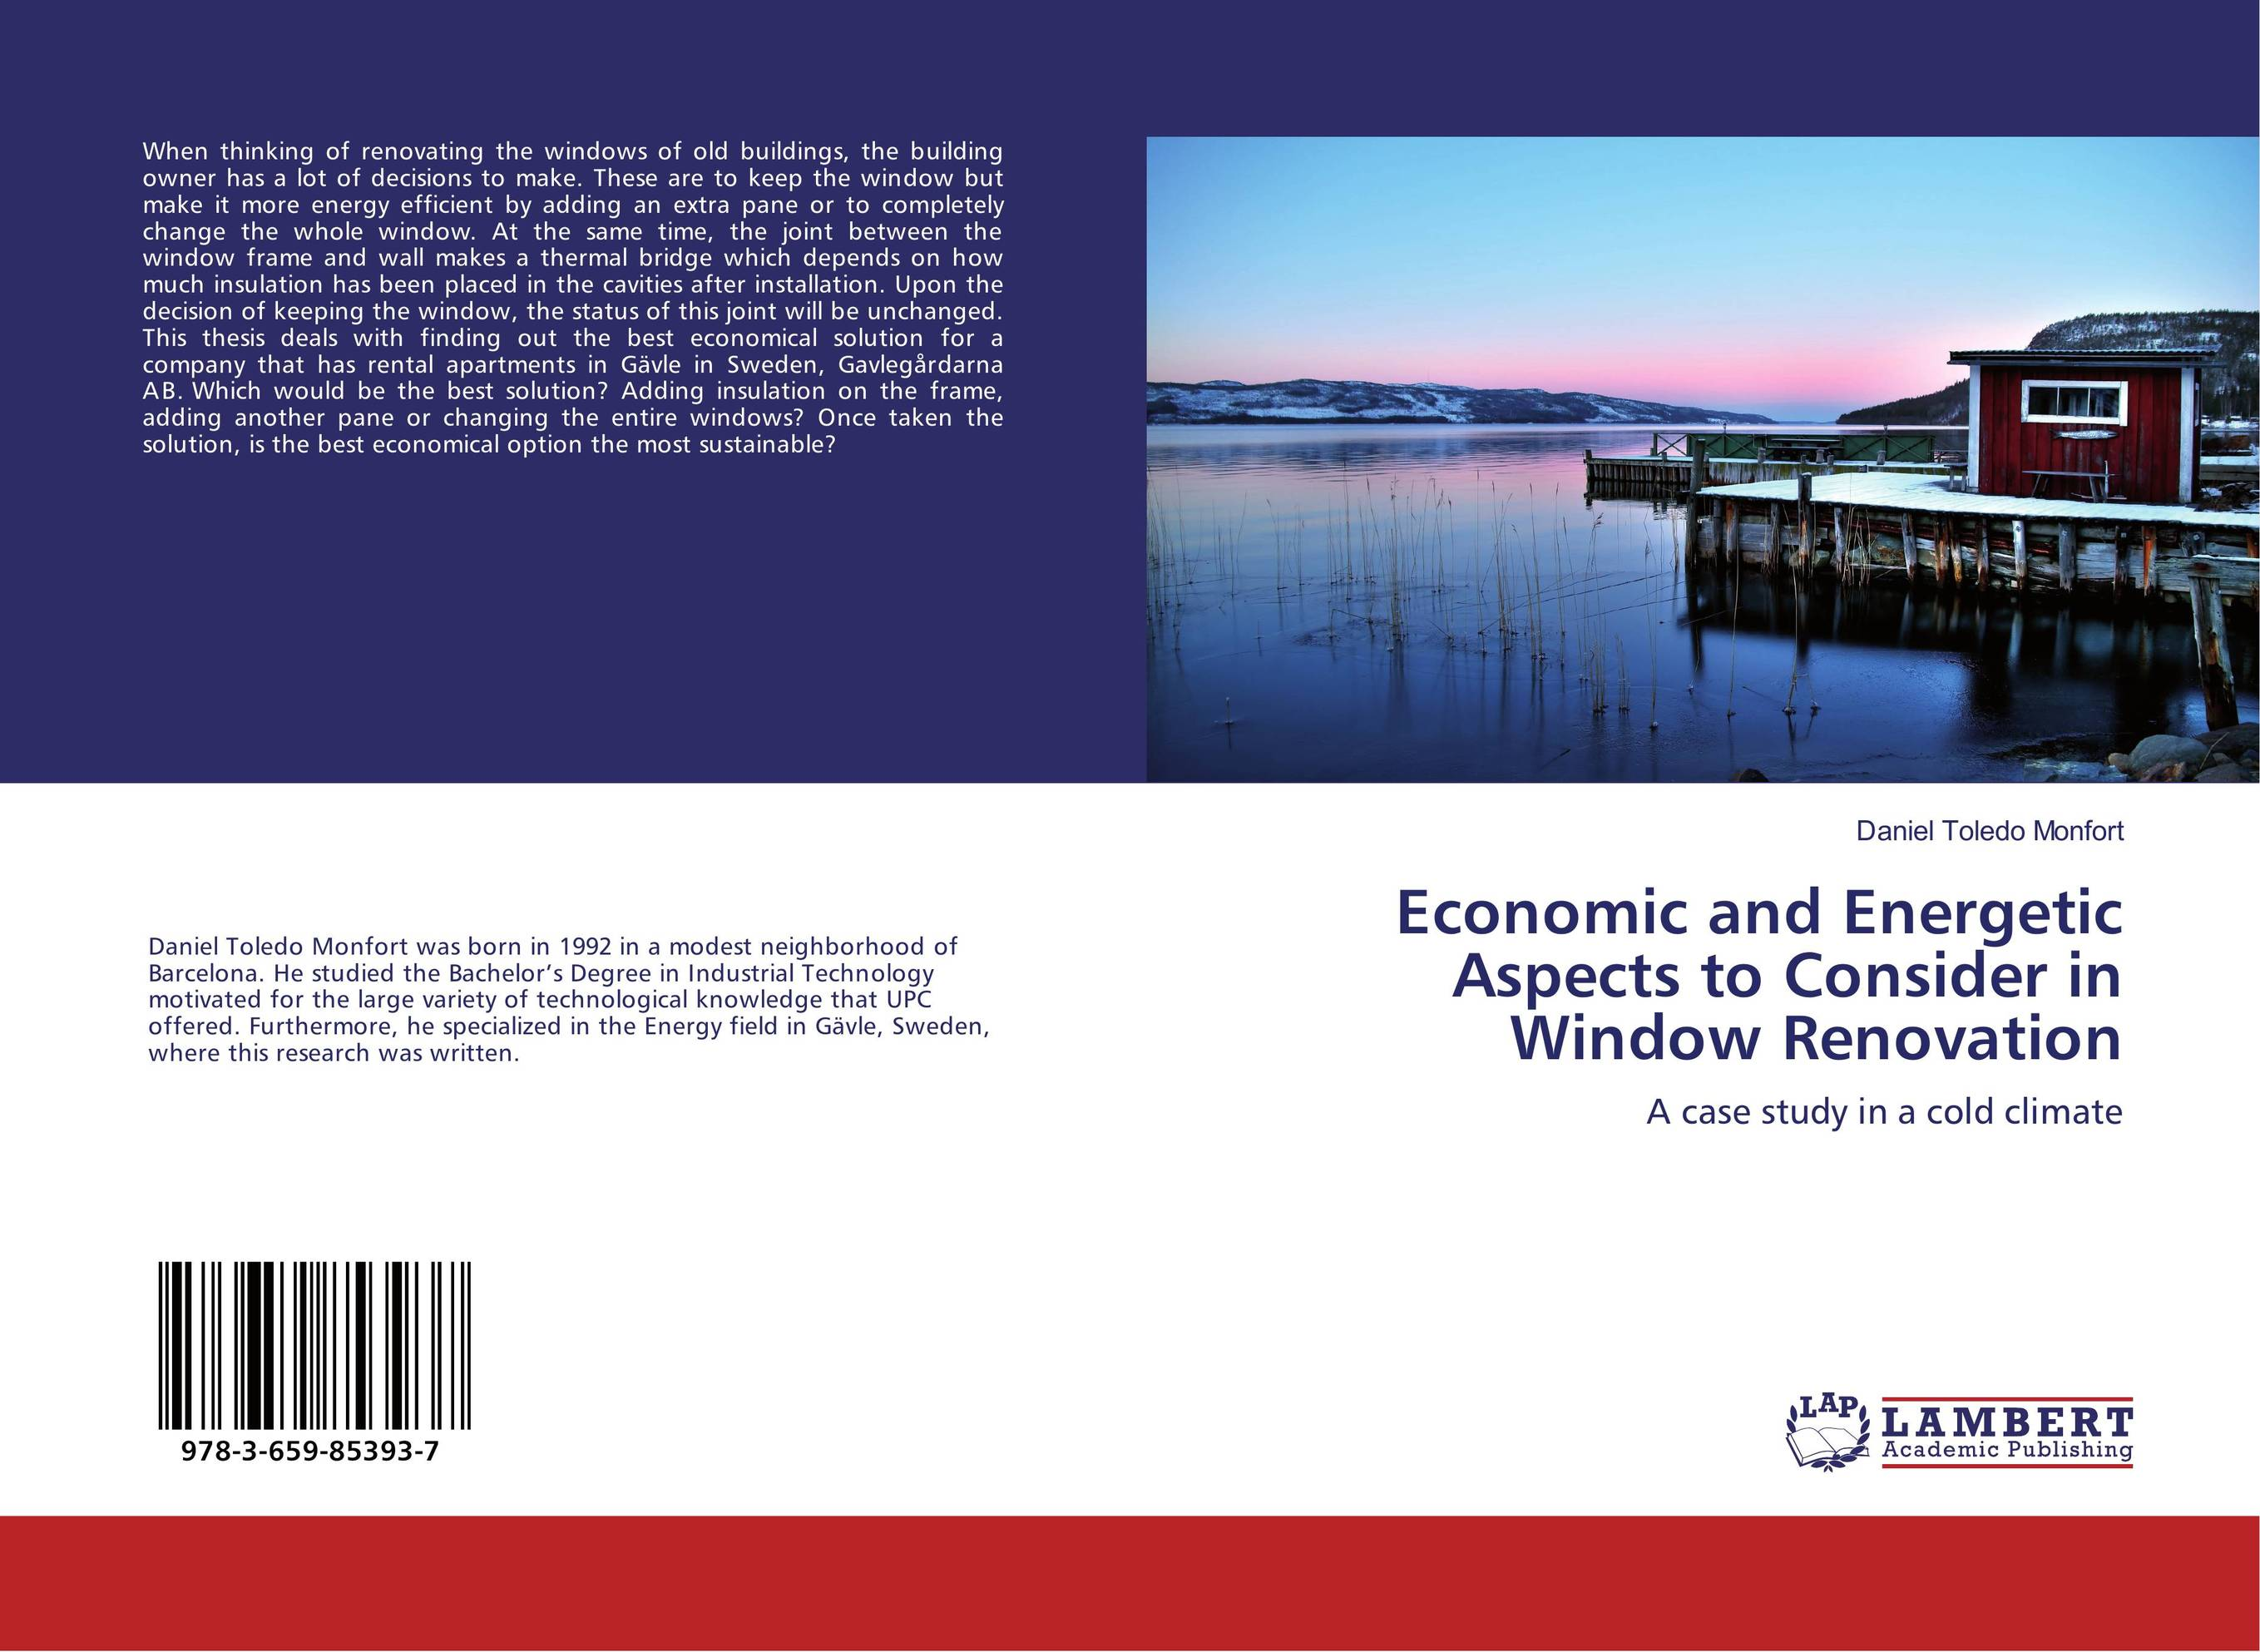 Economic and Energetic Aspects to Consider in Window Renovation николай камзин theory and practical aspects of internationa settlements economic cooperation